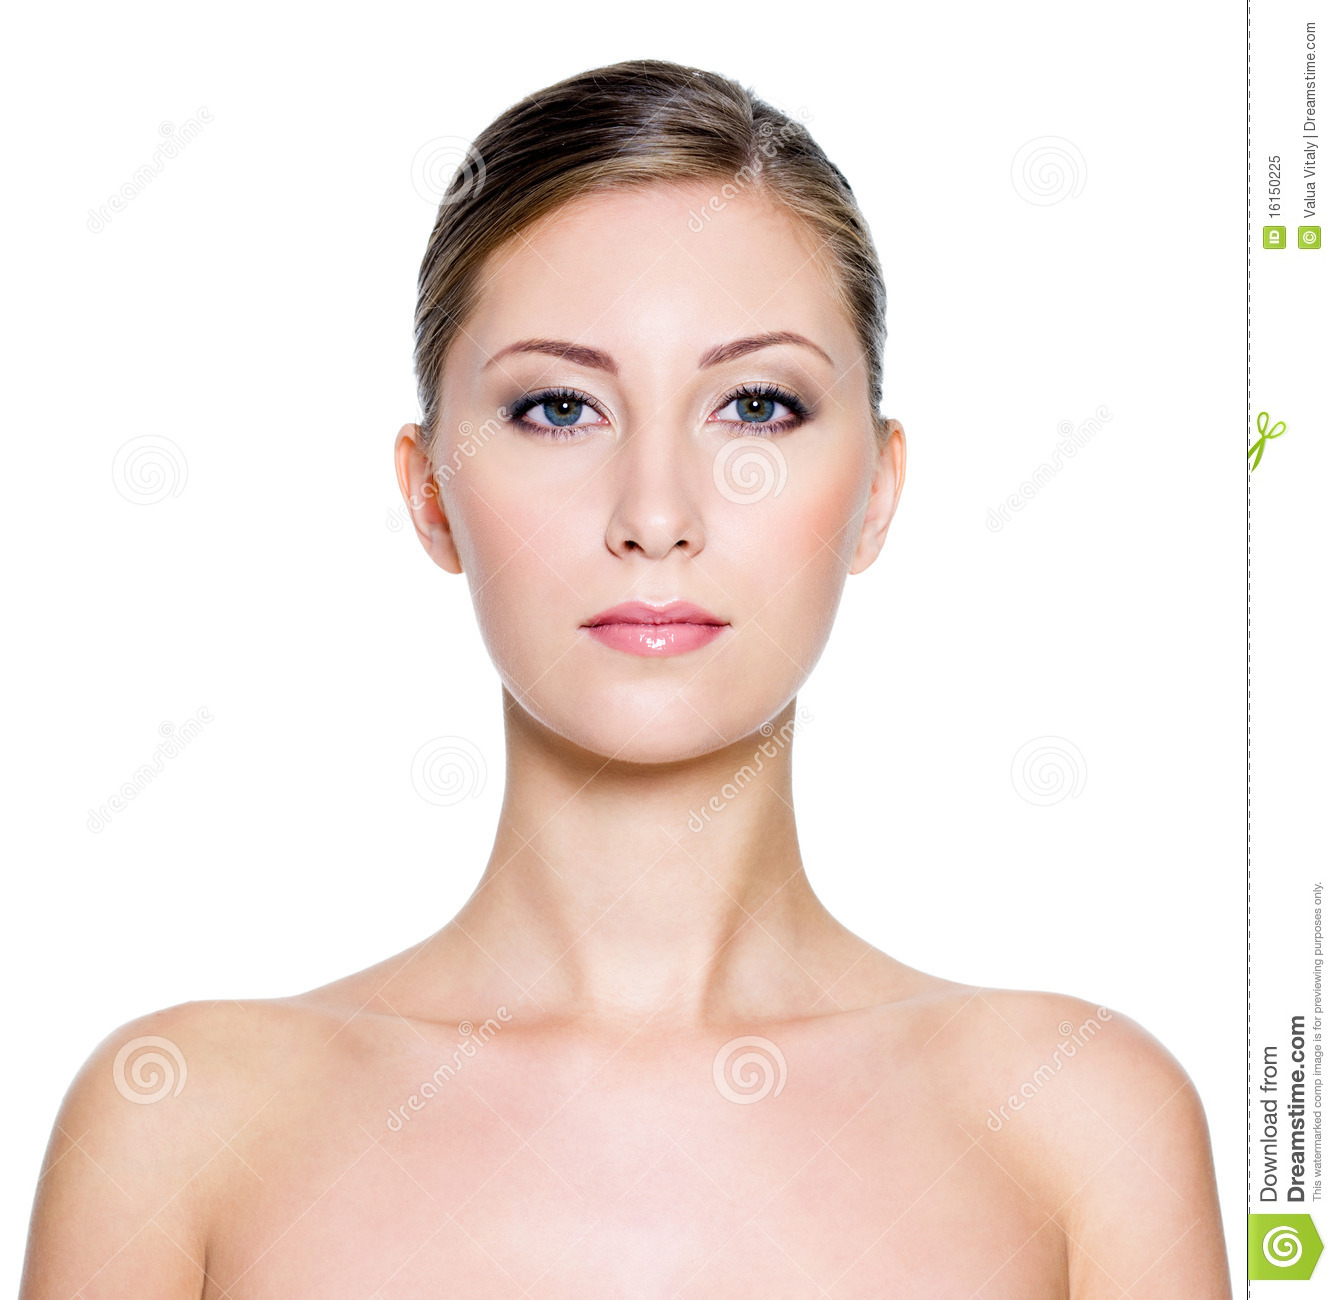 Face Of A Beautiful Woman Royalty Free Stock Photo